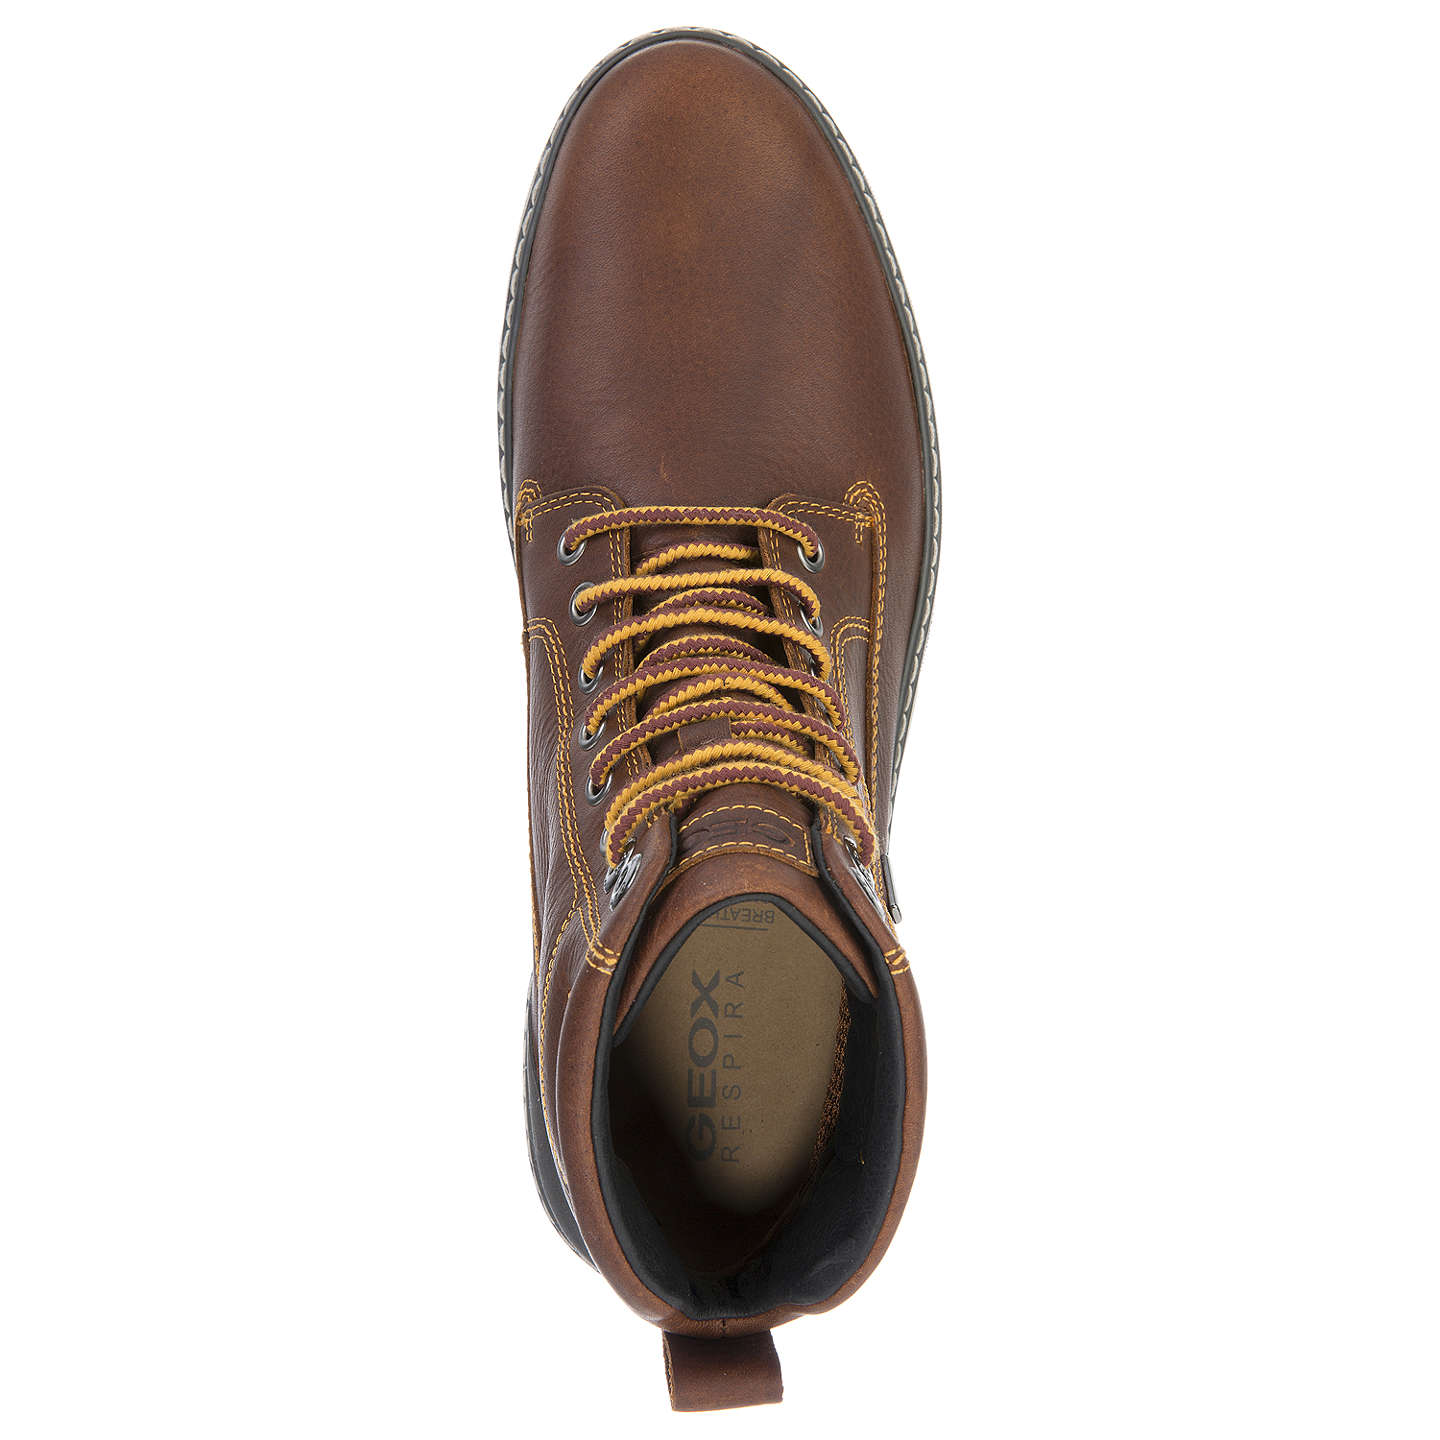 BuyGeox Mattias Amphibiox Lace-Up Boots, Brown, 41 Online at johnlewis.com